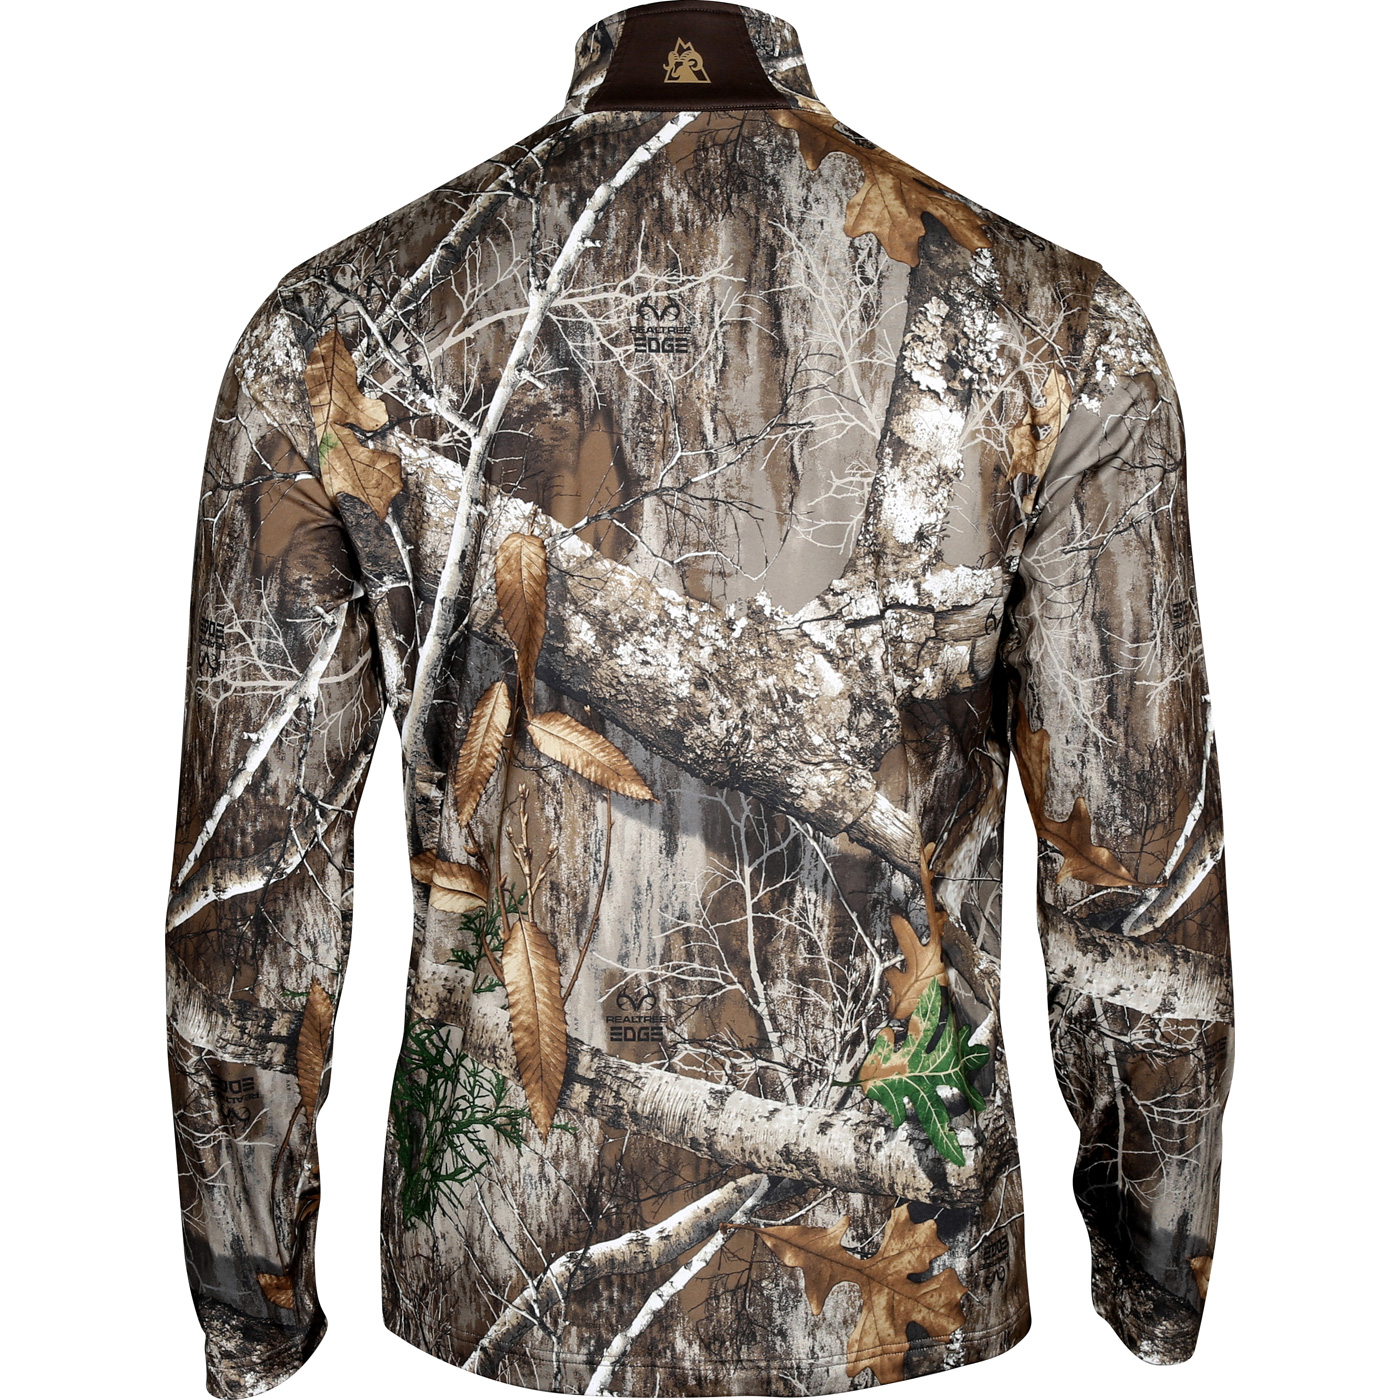 4f75875cca0d3 Images. Rocky Camo Fleece Zip Shirt, Realtree Edge ...